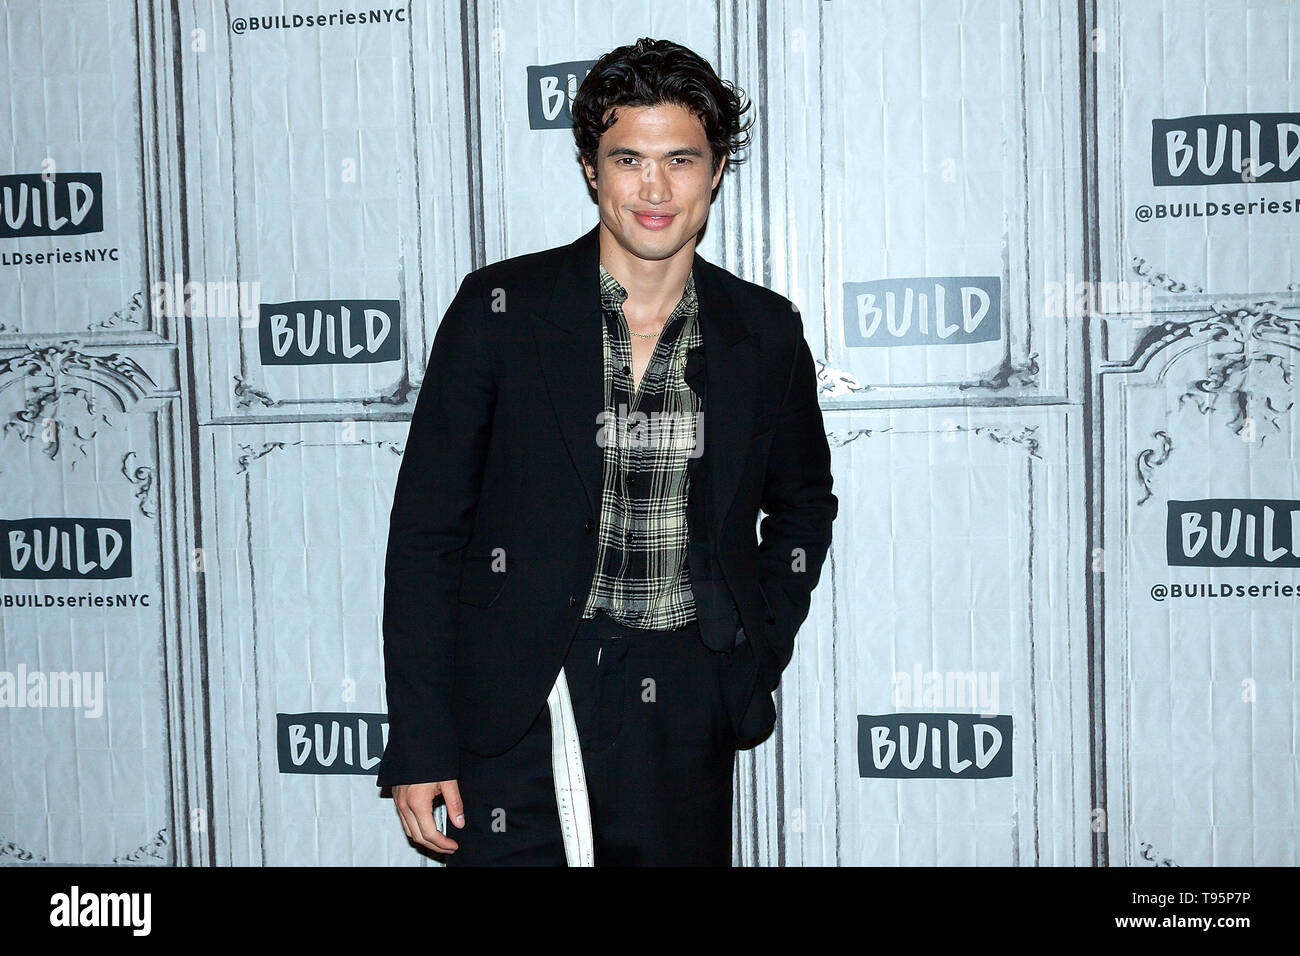 New York, USA. 16 May, 2019. Charles Melton at the BUILD Series with Charles Melton and Yara Shahidi, discussing the new film 'The Sun Is Also a Star' at BUILD Studio. Credit: Steve Mack/Alamy Live News - Stock Image